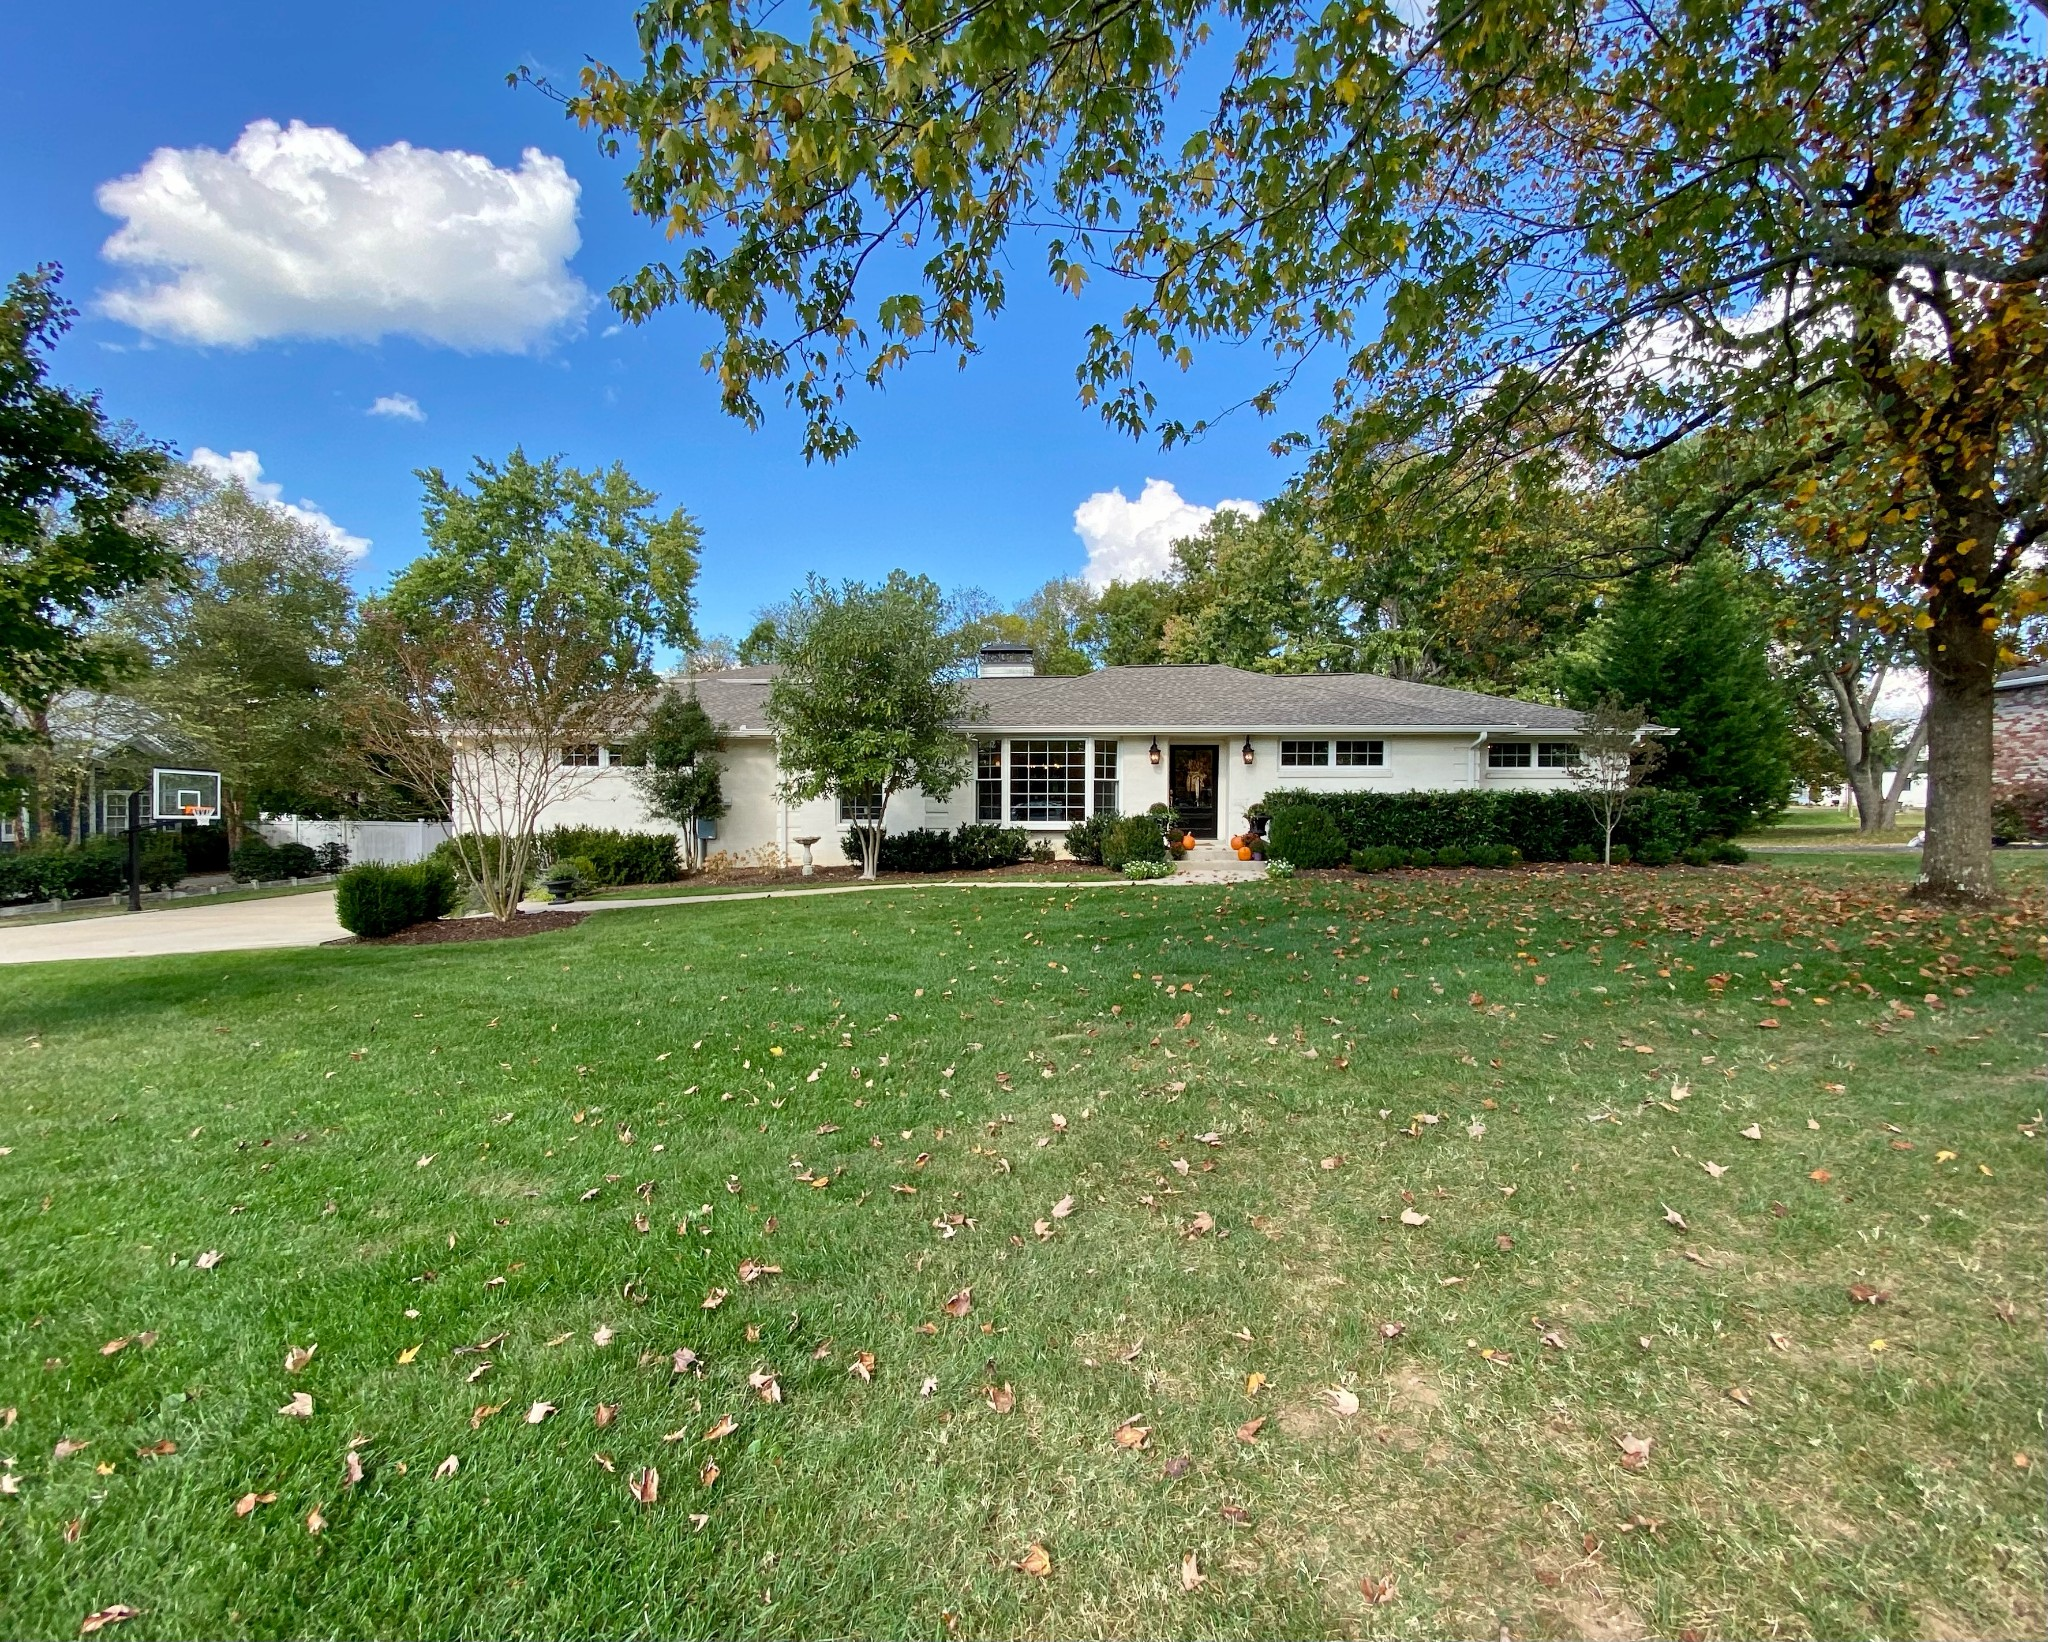 A home unlike anything you have seen in Meadowlake! Meticulous attention to detail! All baths have heated floors! Gourmet kitchen with stainless and granite counters! Heated, saltwater pool w/ diving board! Extensive hardwoods throughout the entire home! 2 fireplaces! Separate living quarters make for an amazing teen suite or additional main level bonus room with kitchenette! Huge 4 car garage! Perfectly flat and private lot with plenty of room beyond the pool for yard activities! Stone fire pit